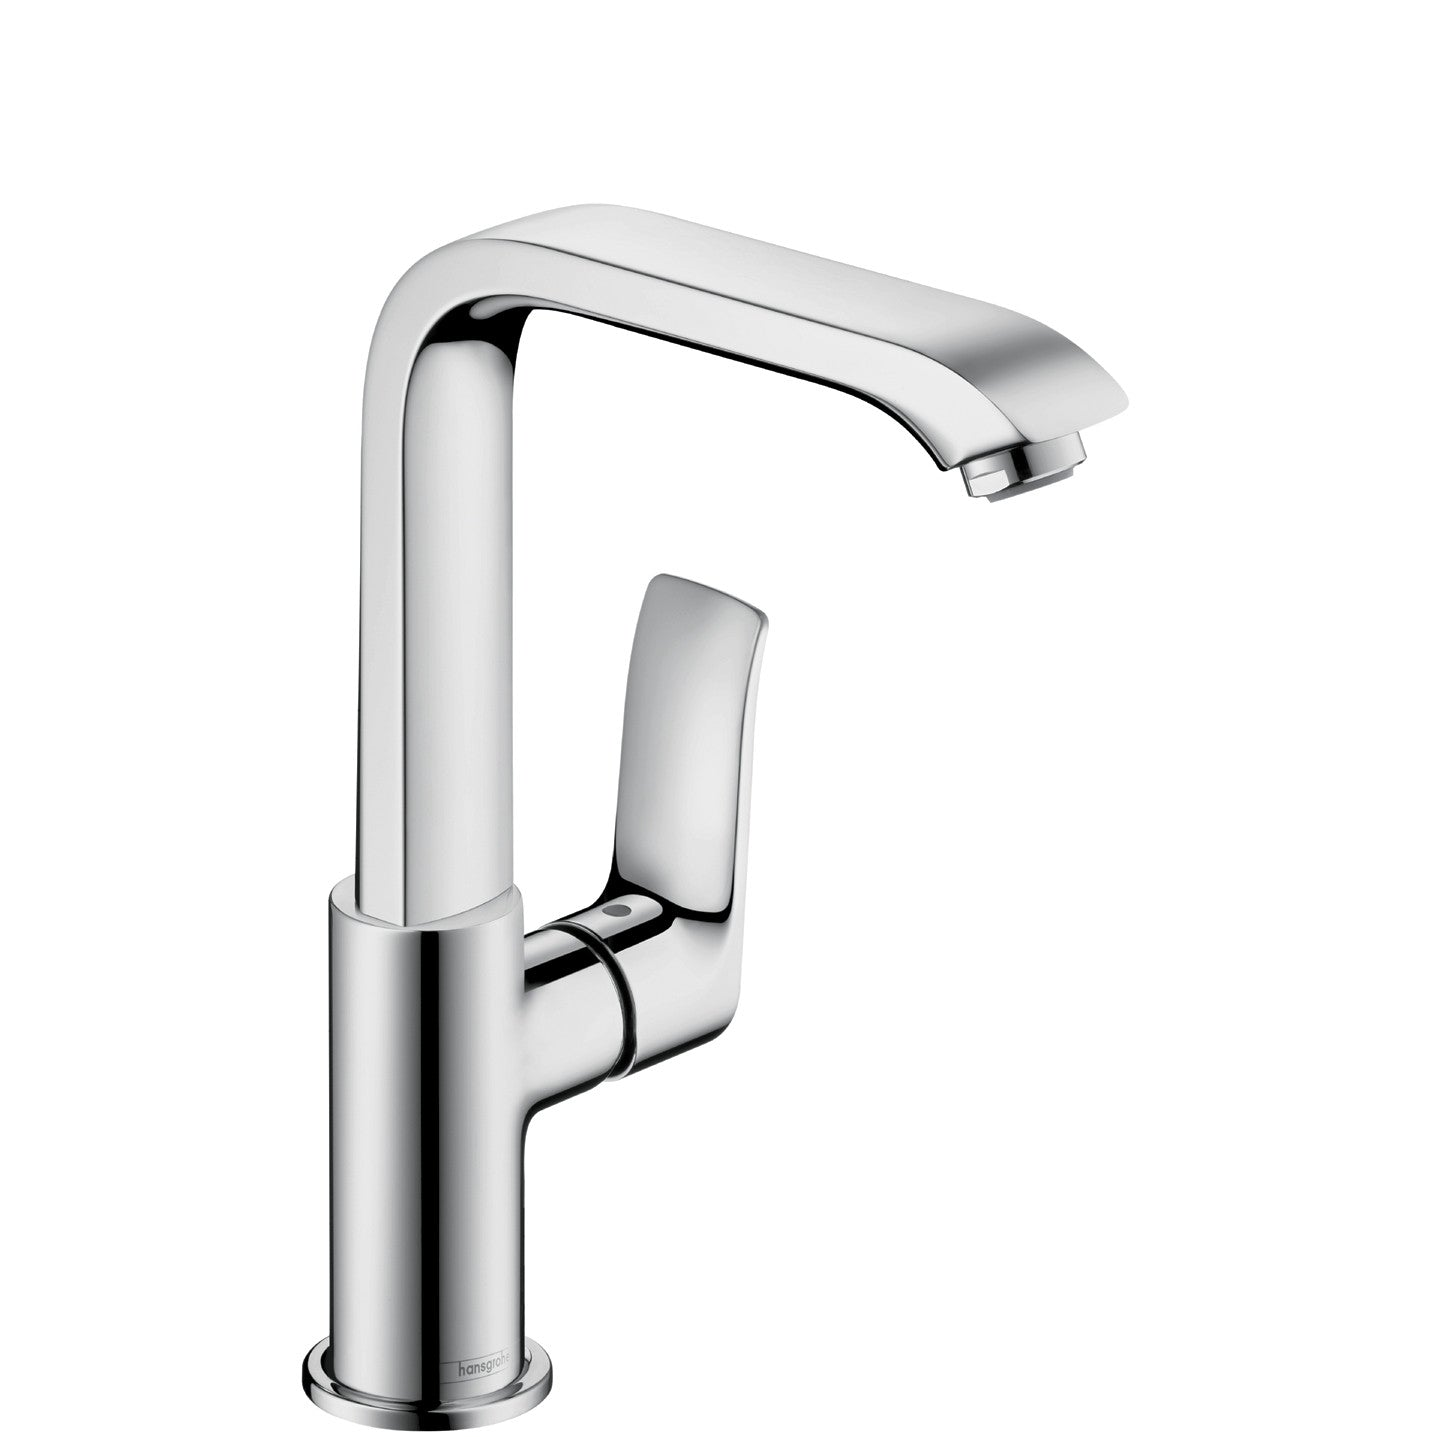 hansgrohe bathroom faucet. Hansgrohe 31087001 Chrome Metris Bathroom Faucet Single Hole with  Side Lever Handle